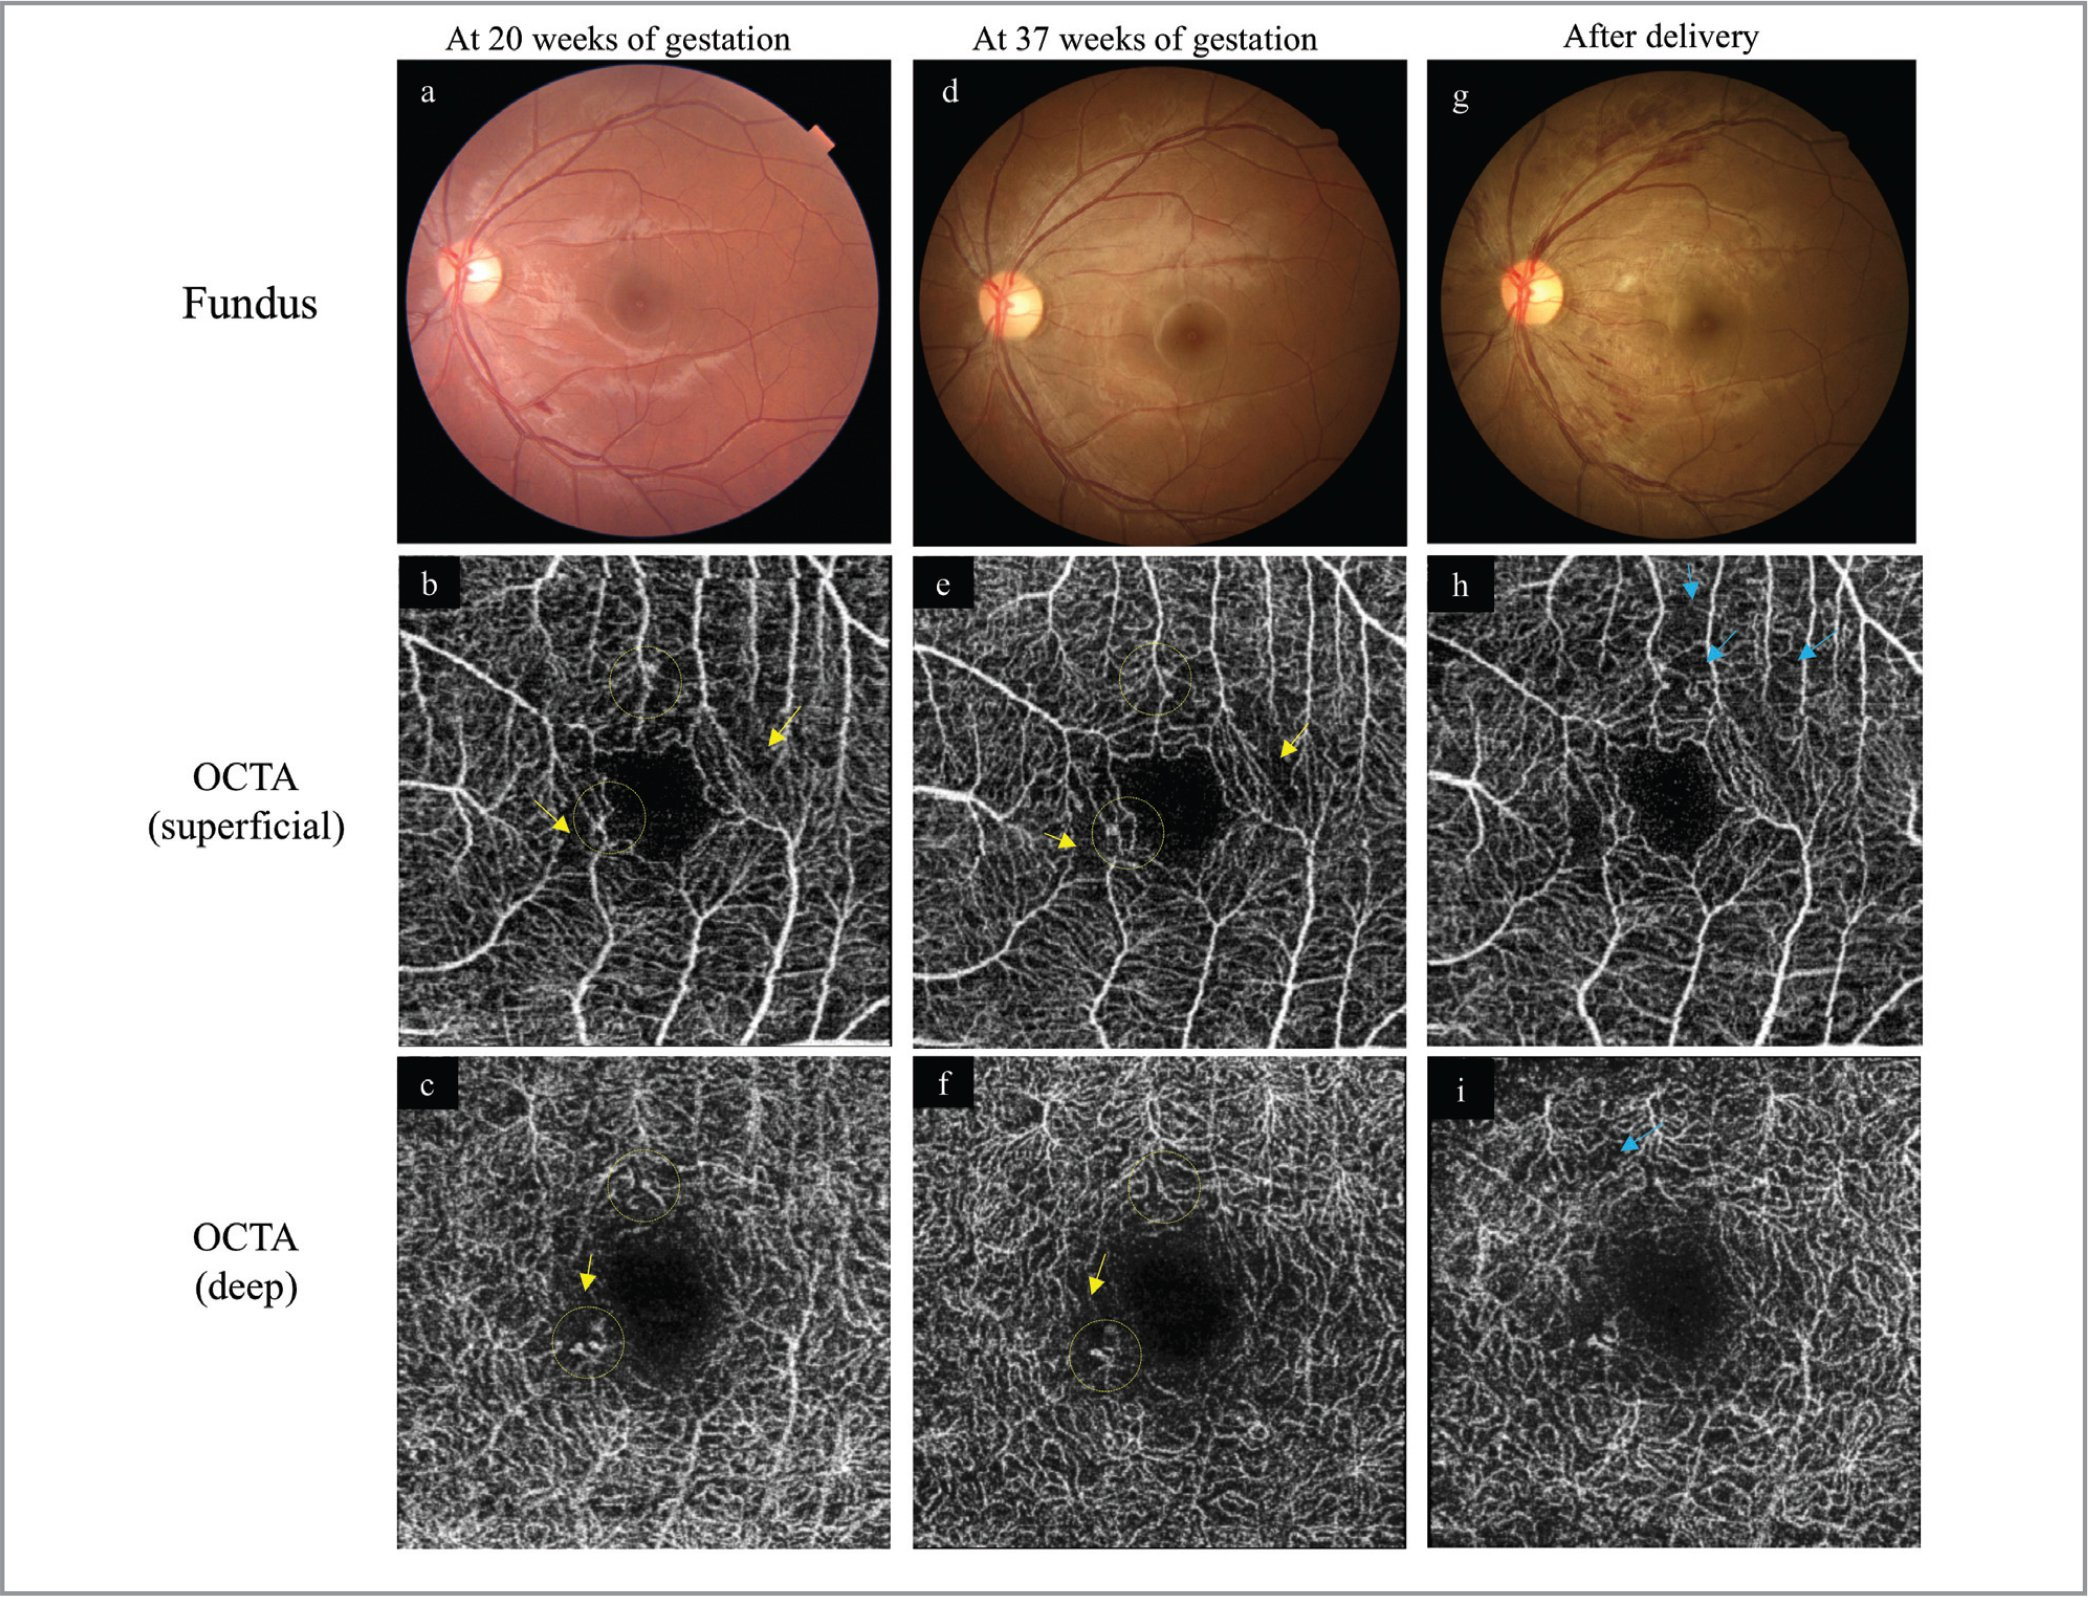 Clinical course of the left eye before and after delivery. Fundus photographs and macular 3 × 3-mm optical coherence tomography angiography (OCTA) images obtained at 20 weeks of gestation (a–c), at 37 weeks of gestation (d–f), and 6 weeks after delivery (g–i). The images in the second row (b, e, h) show the superficial vascular plexus, and the images in the third row (c, f, i) show the deep capillary plexus centered on the fovea. As in the right eye, microaneurysms (yellow circles) and small capillary non-perfusion (yellow arrows) are observed before delivery; there are no apparent differences between 20 weeks (b, c) and 37 weeks of gestation (e, f). However, after delivery, multiple flame-shaped retinal hemorrhages and soft exudates are observed (g), and OCTA shows new areas of flow (blue arrows) in both plexuses (h, i).